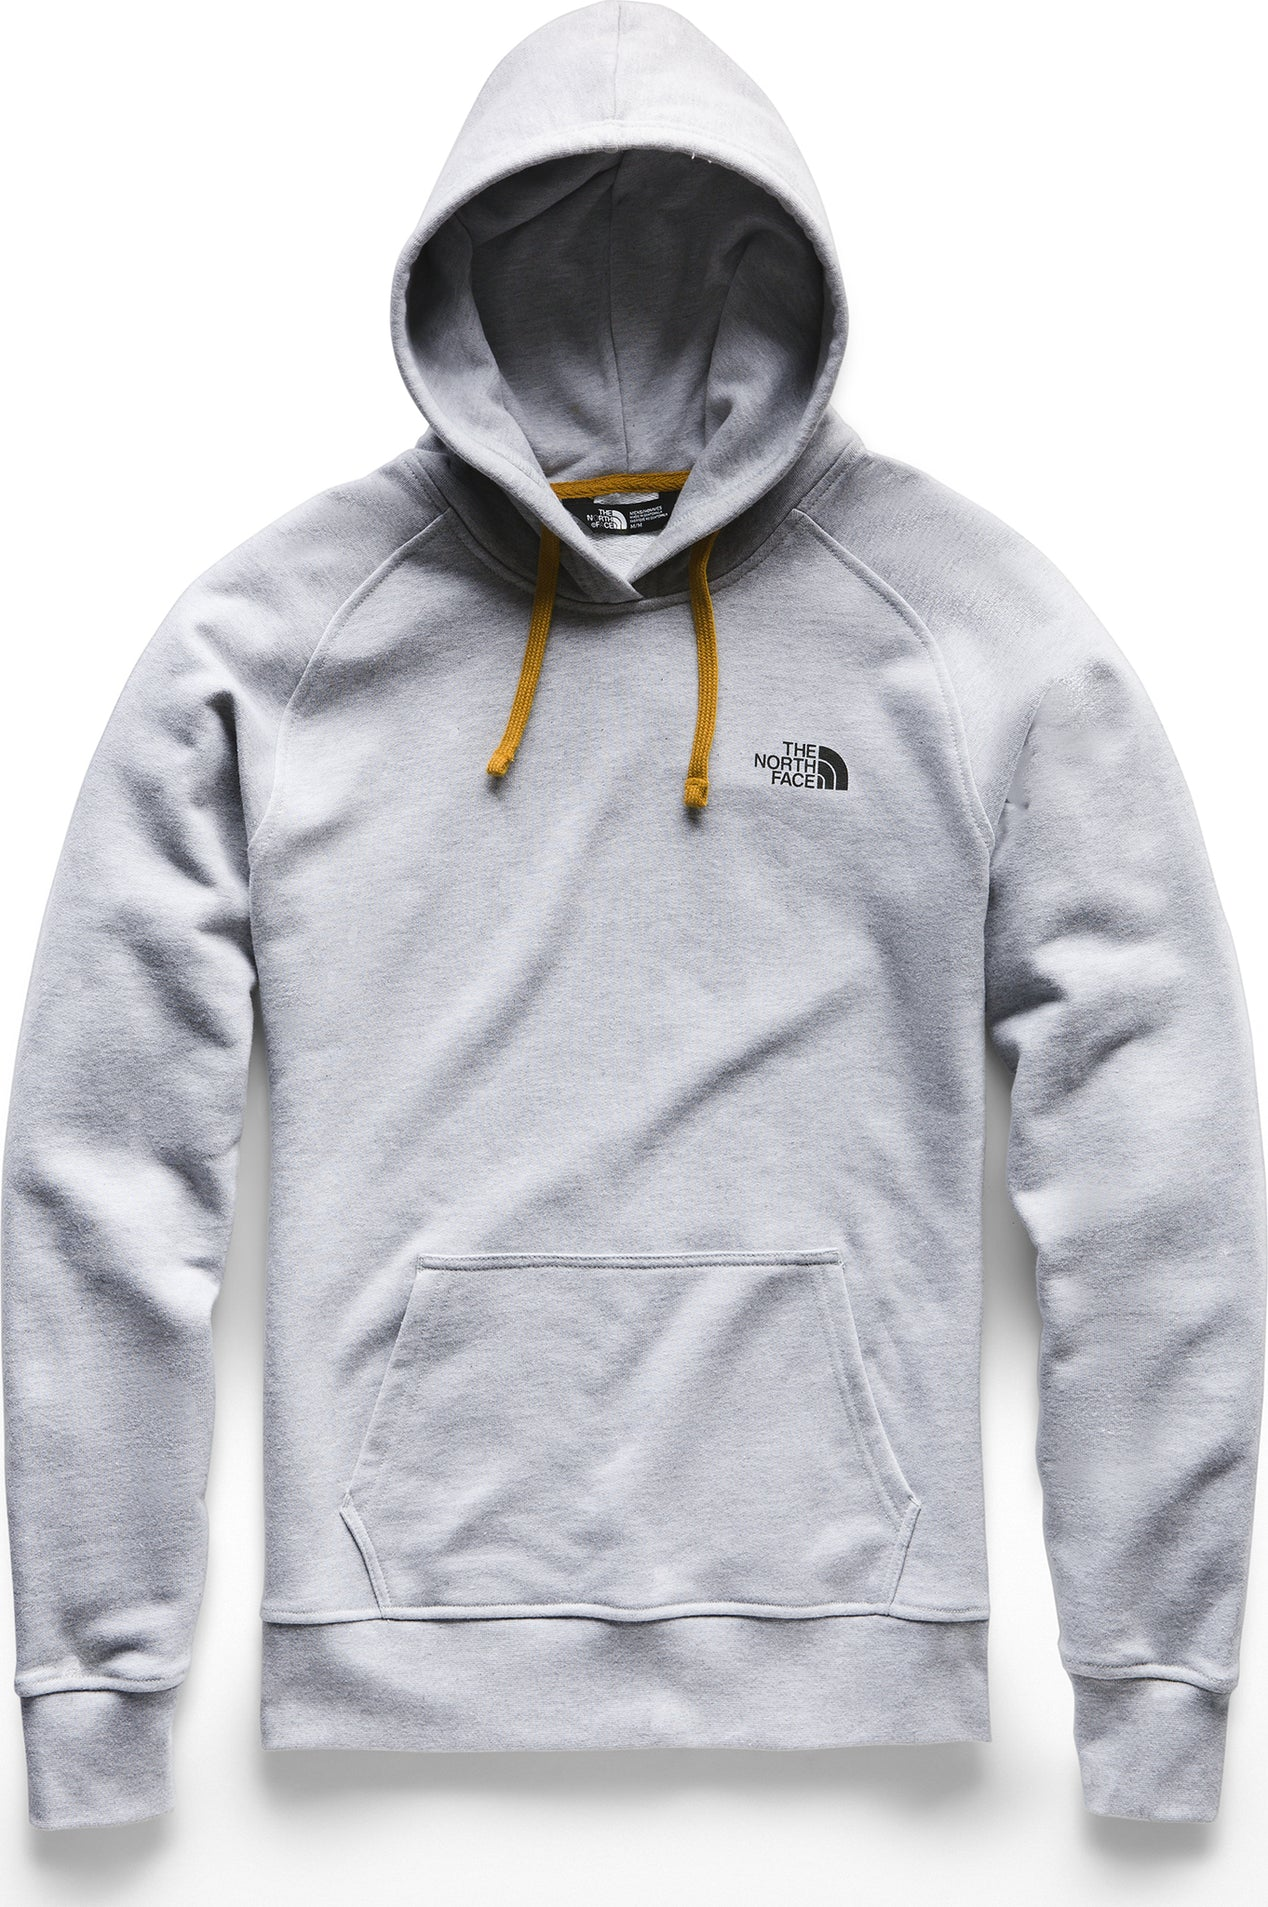 4dfbc95bb The North Face Gradient Sunset Pullover Hoodie - Women's | The Last Hunt